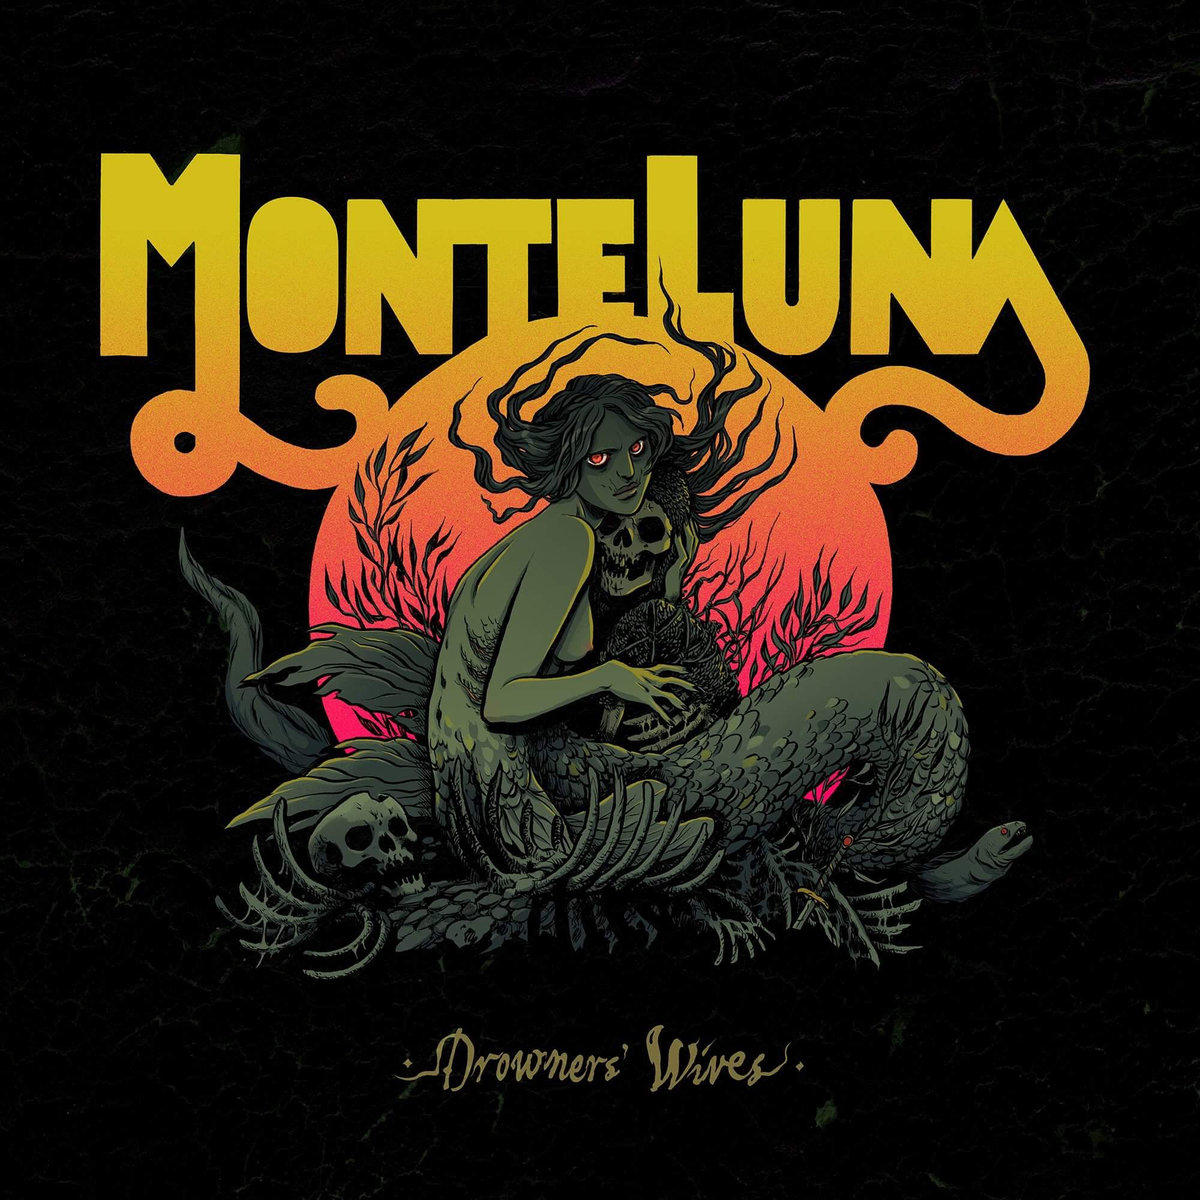 monte luna drowners wives